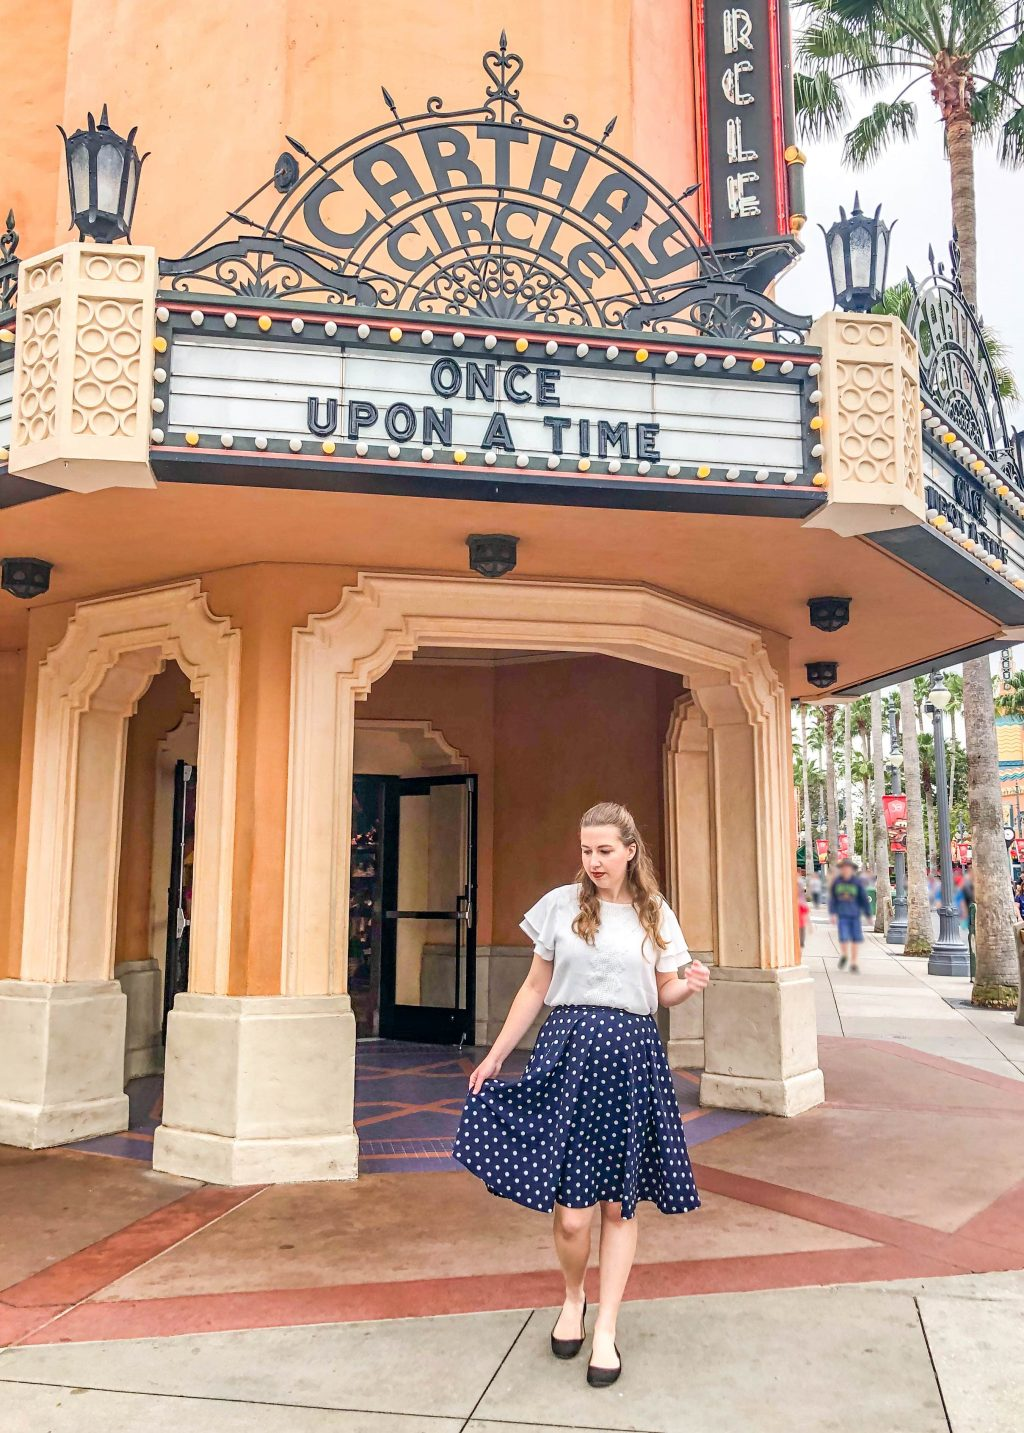 """Girl with white shirt and blue skirt stands out front of Carthay Circle. A large letter board on the building reads """"Once Upon a Time""""."""